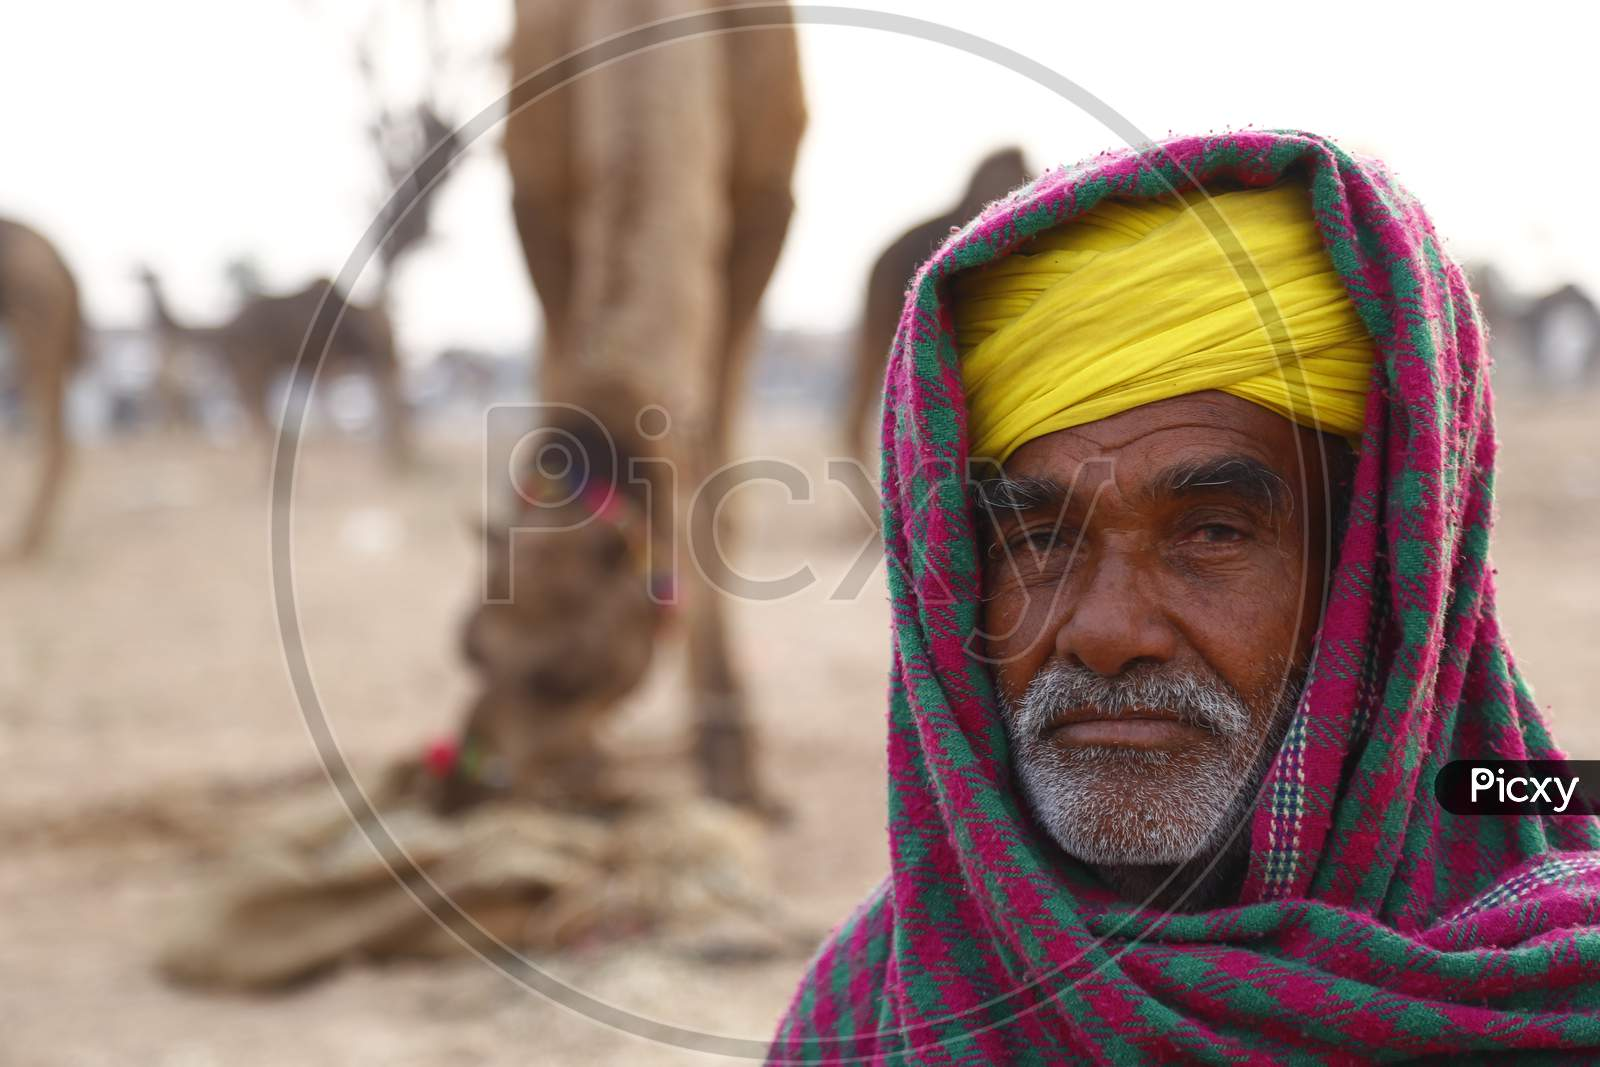 Nagaur Cattle Fair, Where Animals Like Camels, Cows, Horses And Bulls Are Brought To Be Sold Or Traded, In Nagaur District In The Desert State Of Rajasthan, India.